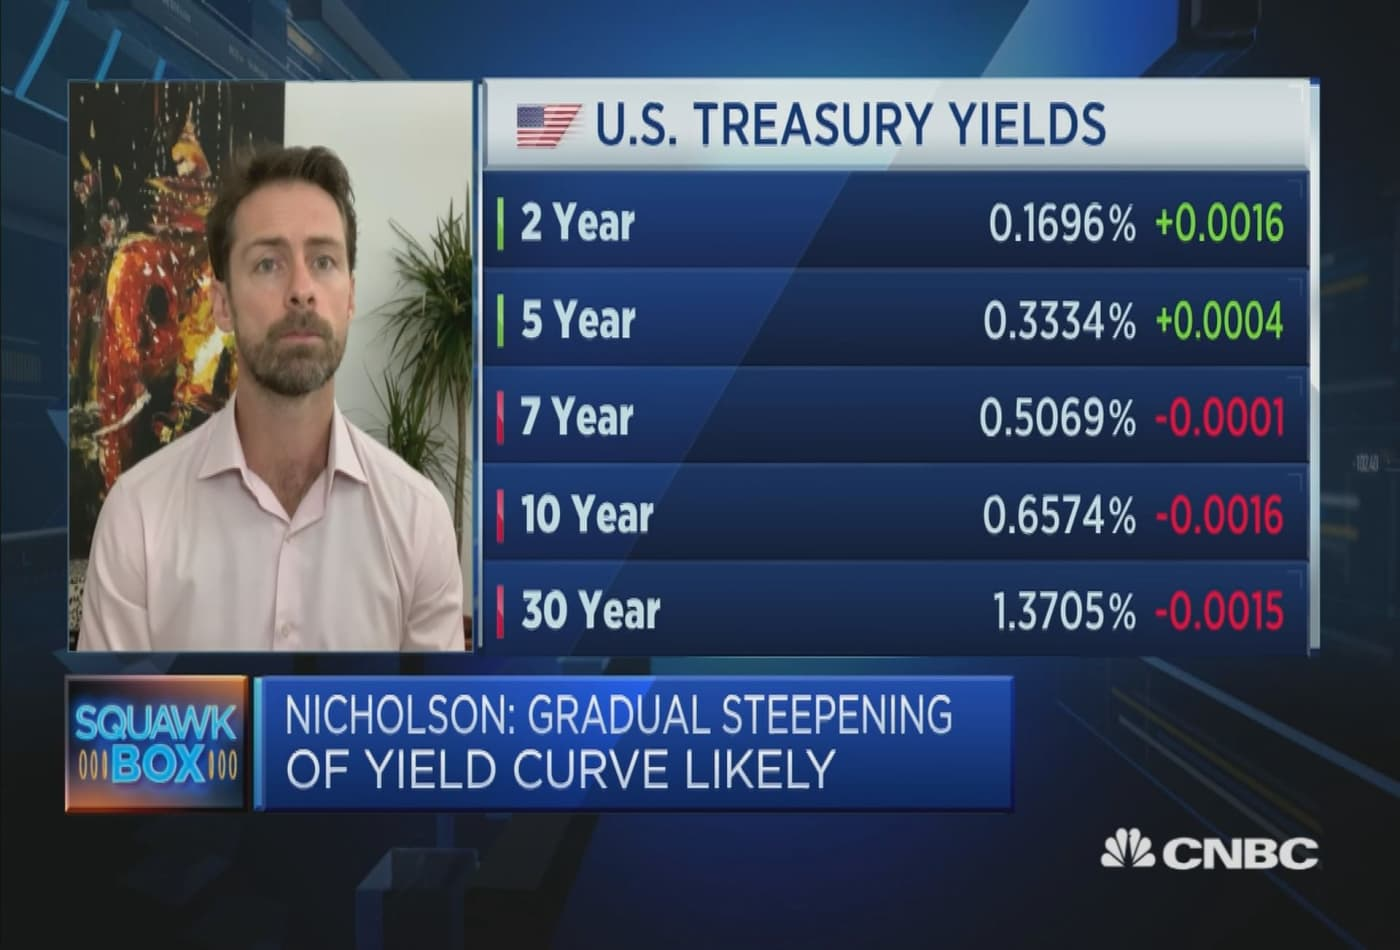 US yield curve is likely to steepen in the near future: Strategist